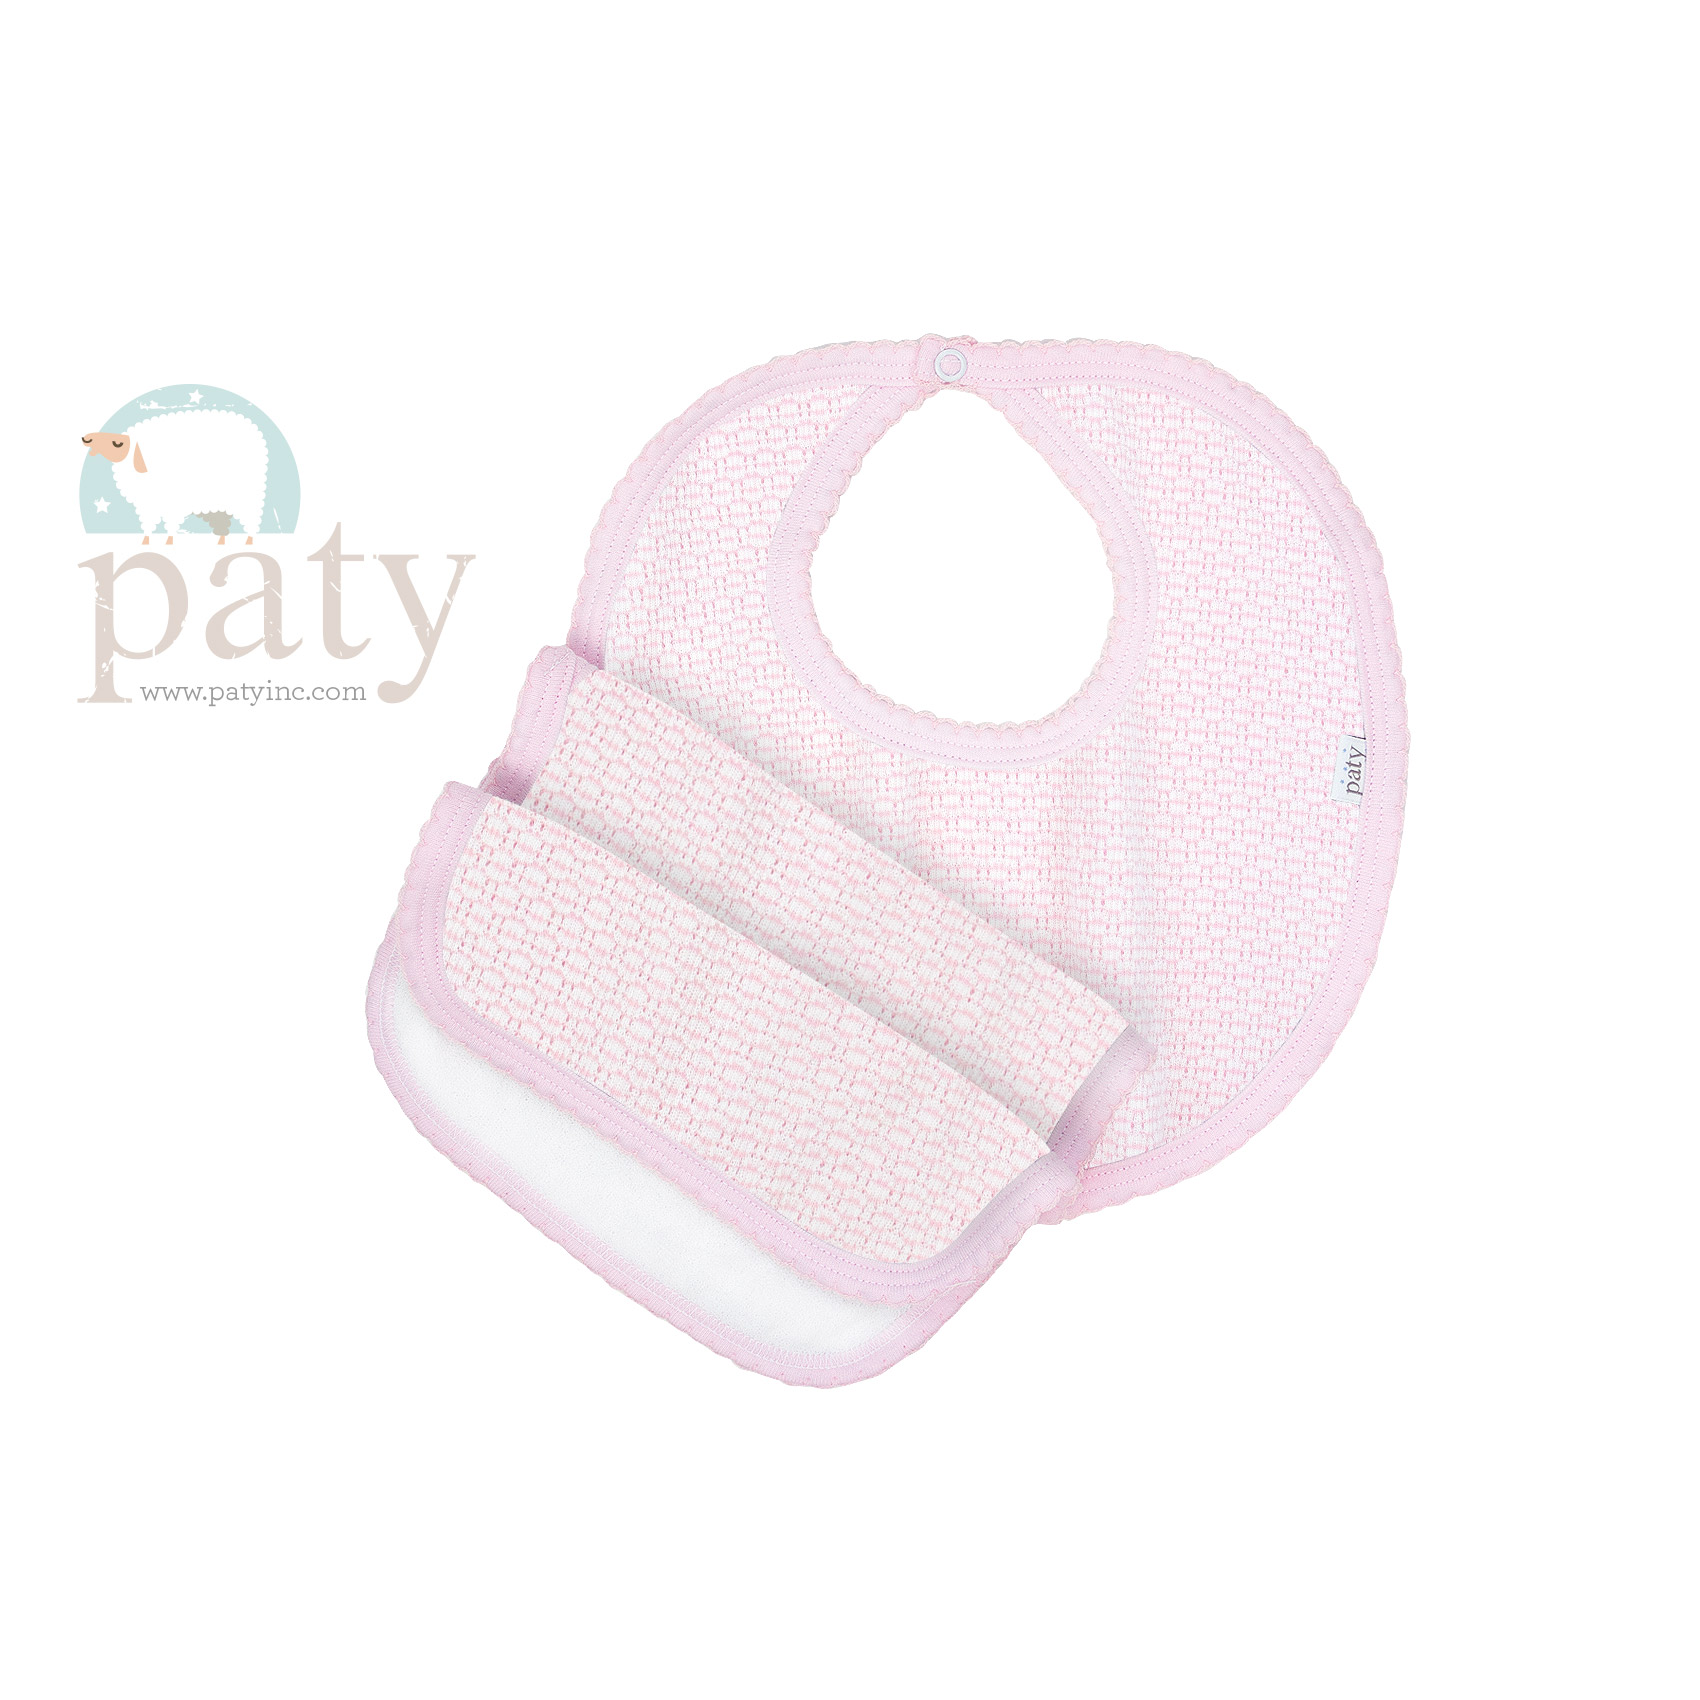 Pink Solid Color paty Knit Bib and Burp